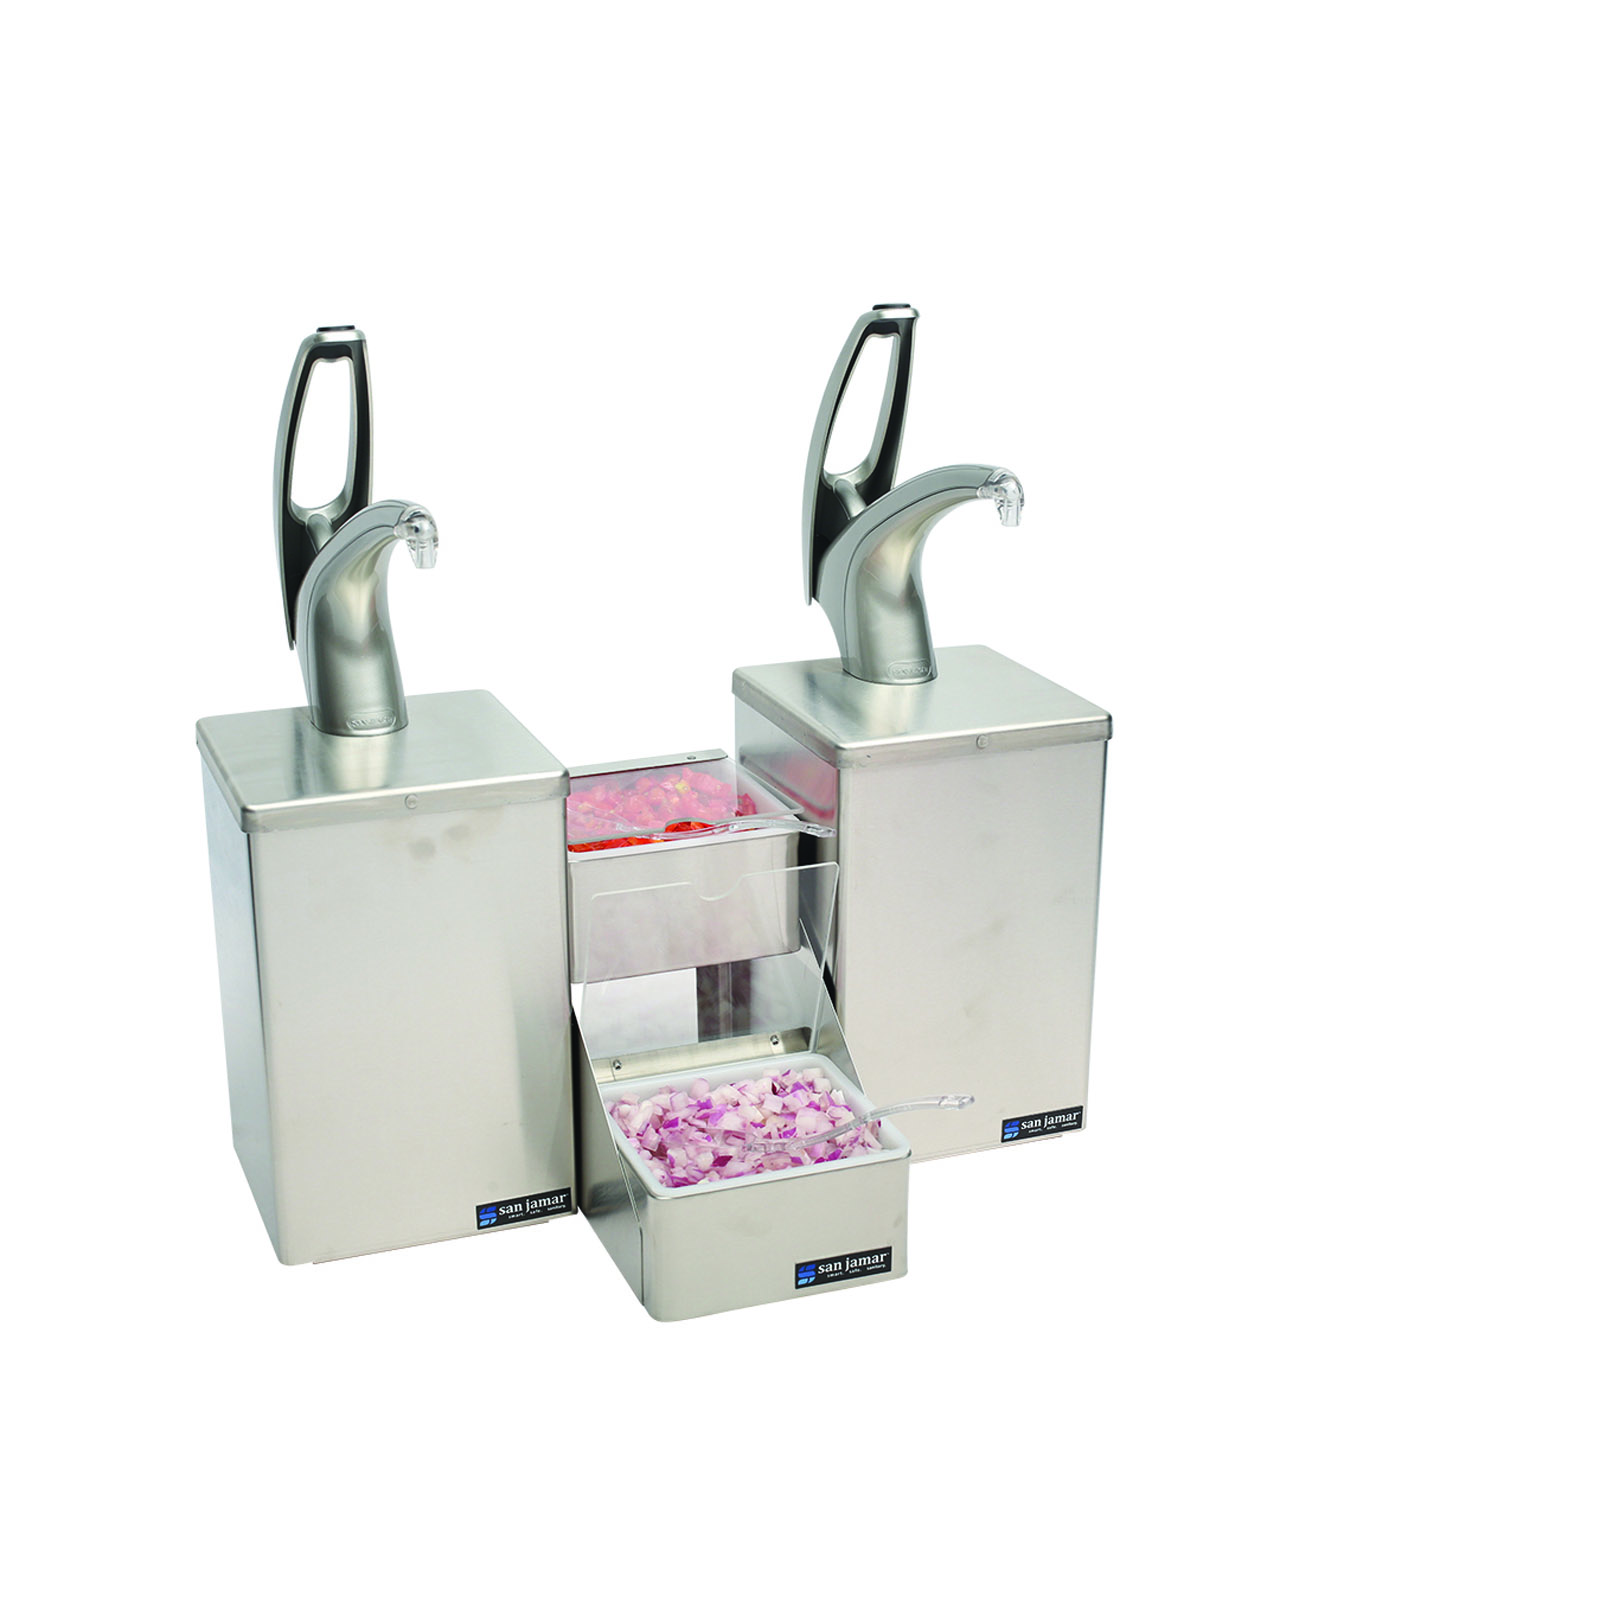 San Jamar P4826 condiment dispenser pump-style